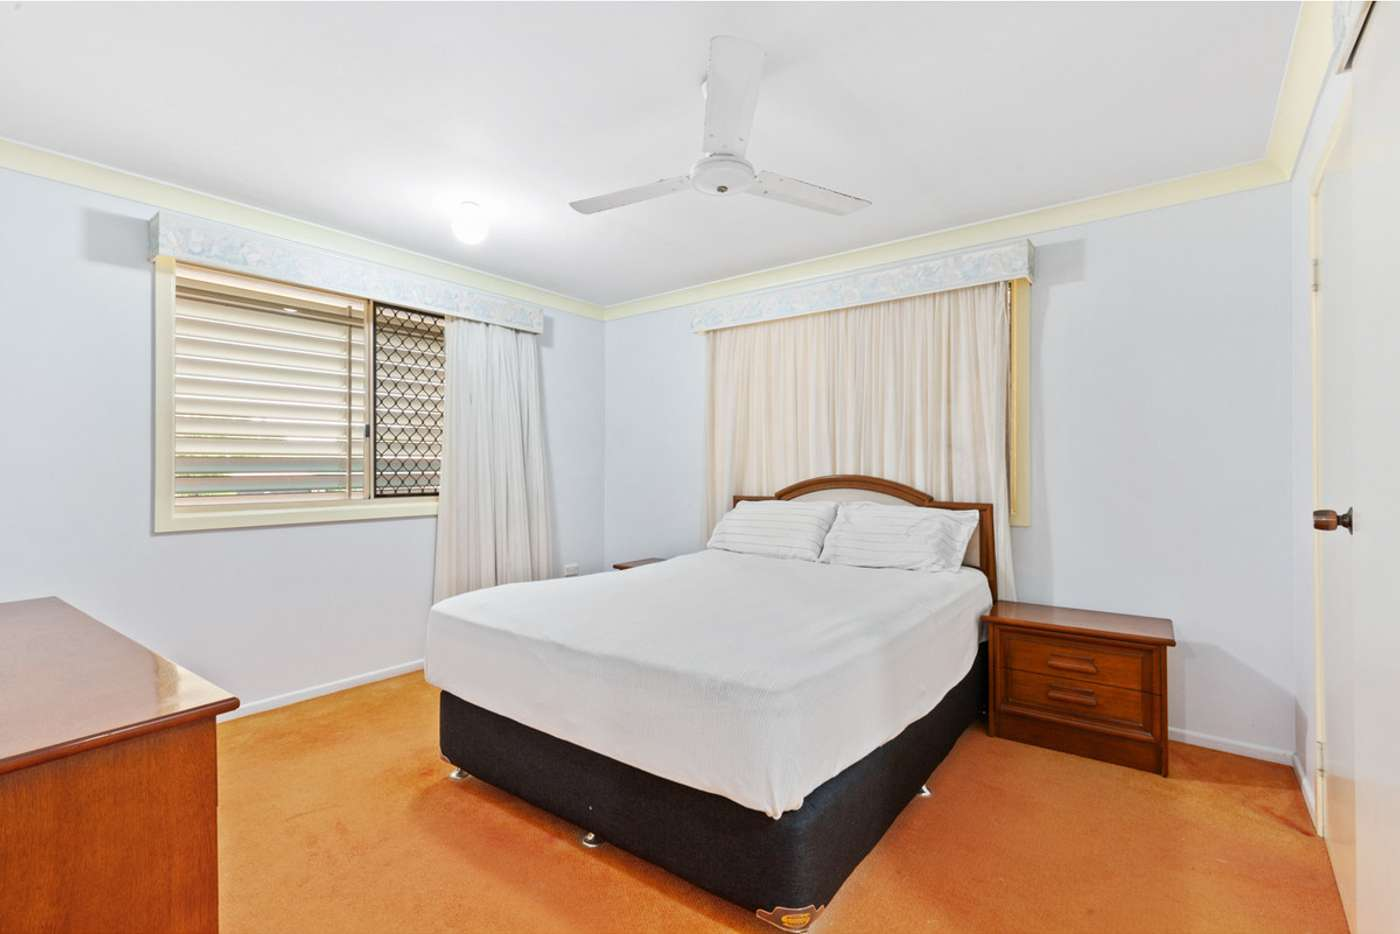 Sixth view of Homely house listing, 404 Farm Street, Norman Gardens QLD 4701